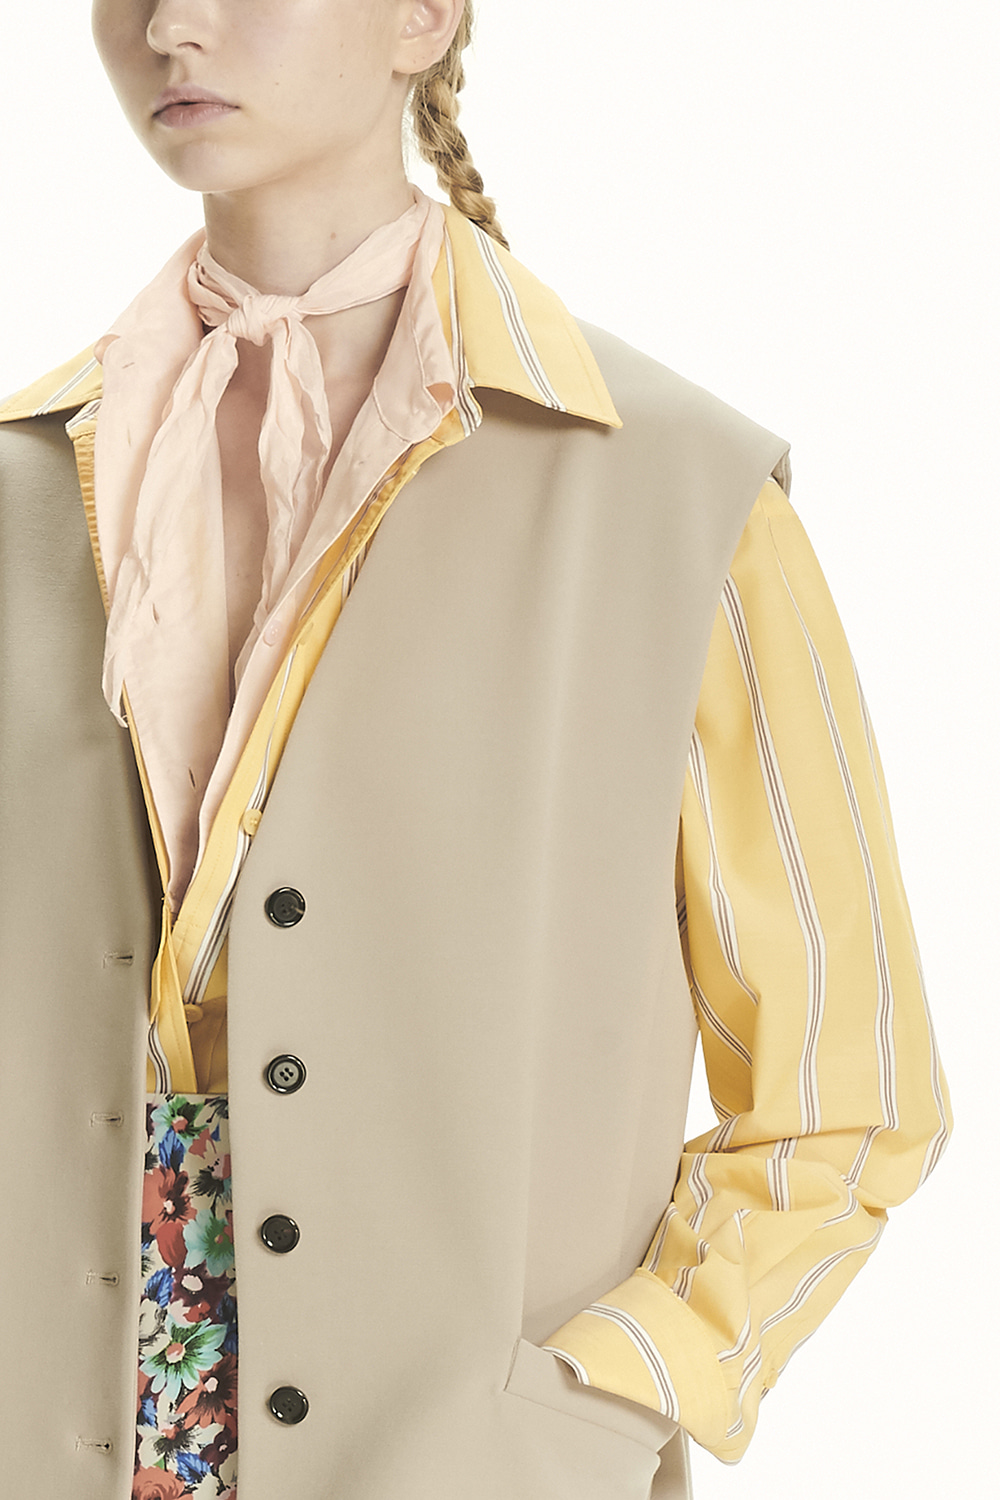 PS21 LAYERED COLLAR YELLOW SHIRT